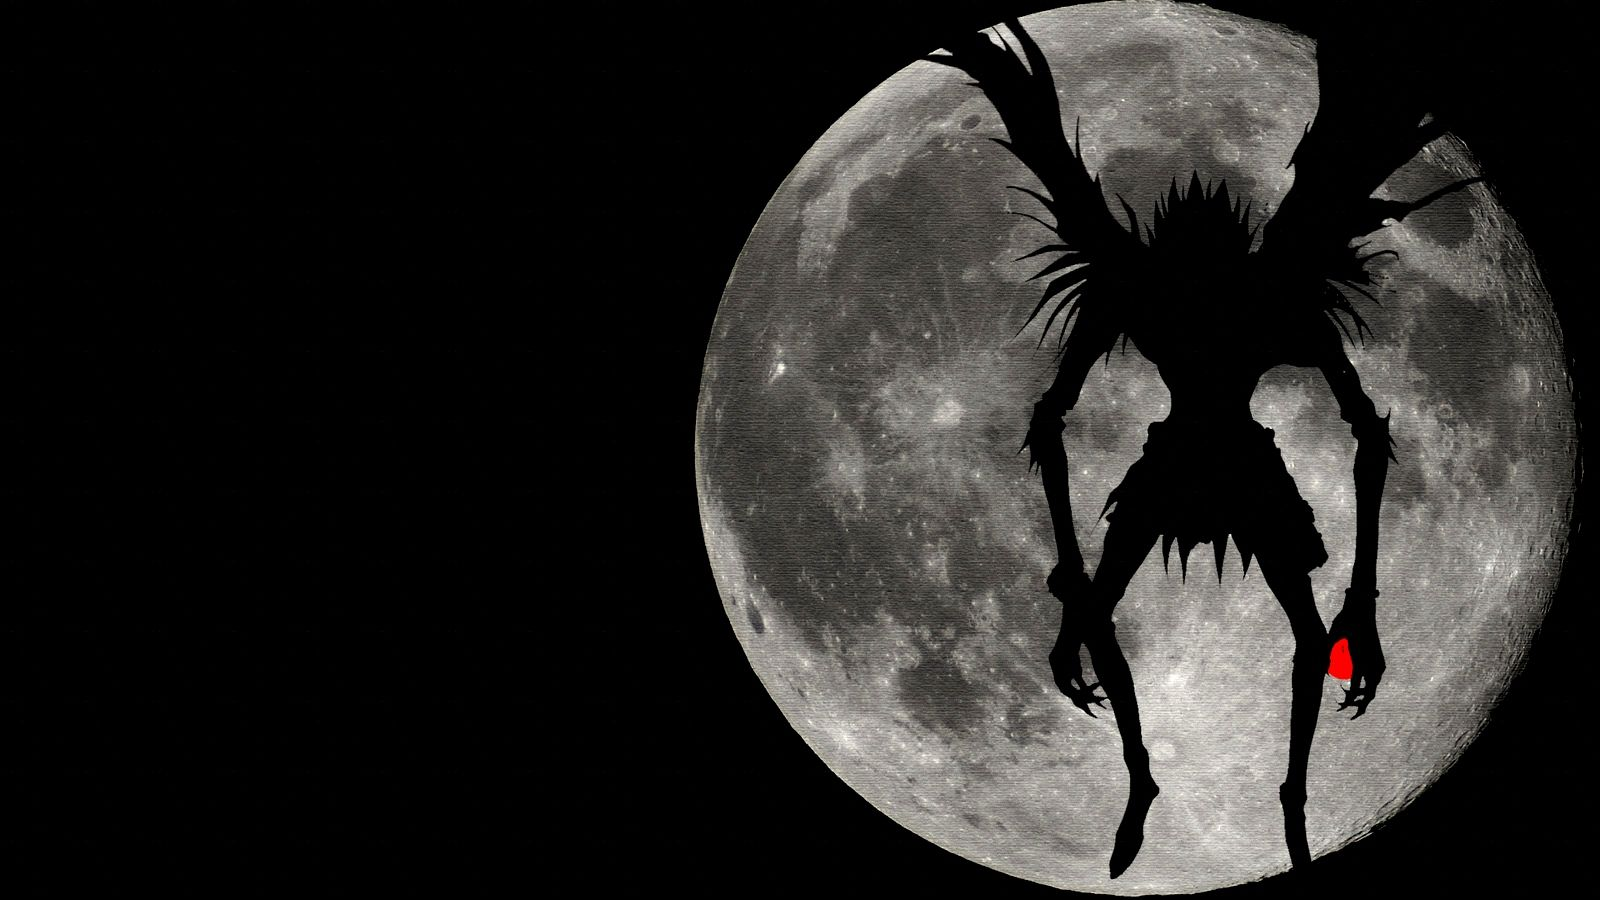 Death Note Shinigami Ryuk Shadow Full Moon Wallpaper